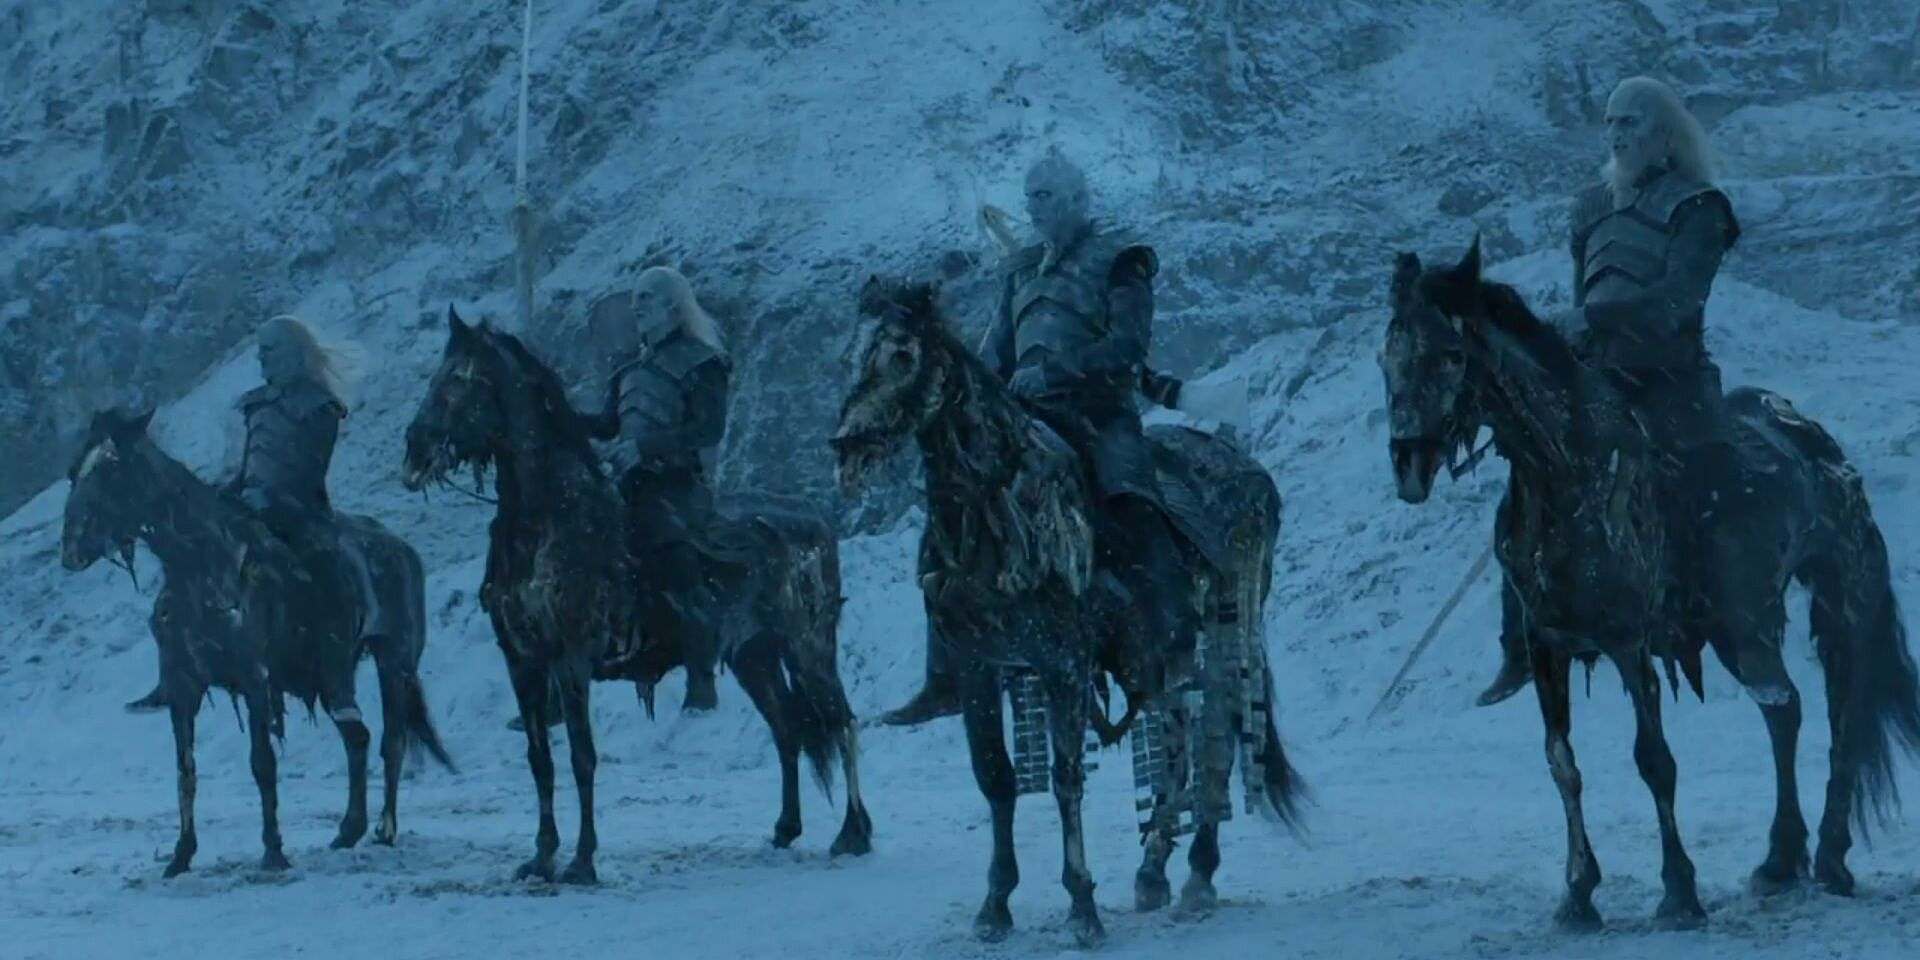 Game of Thrones as Myth: The Roots of the White Walkers